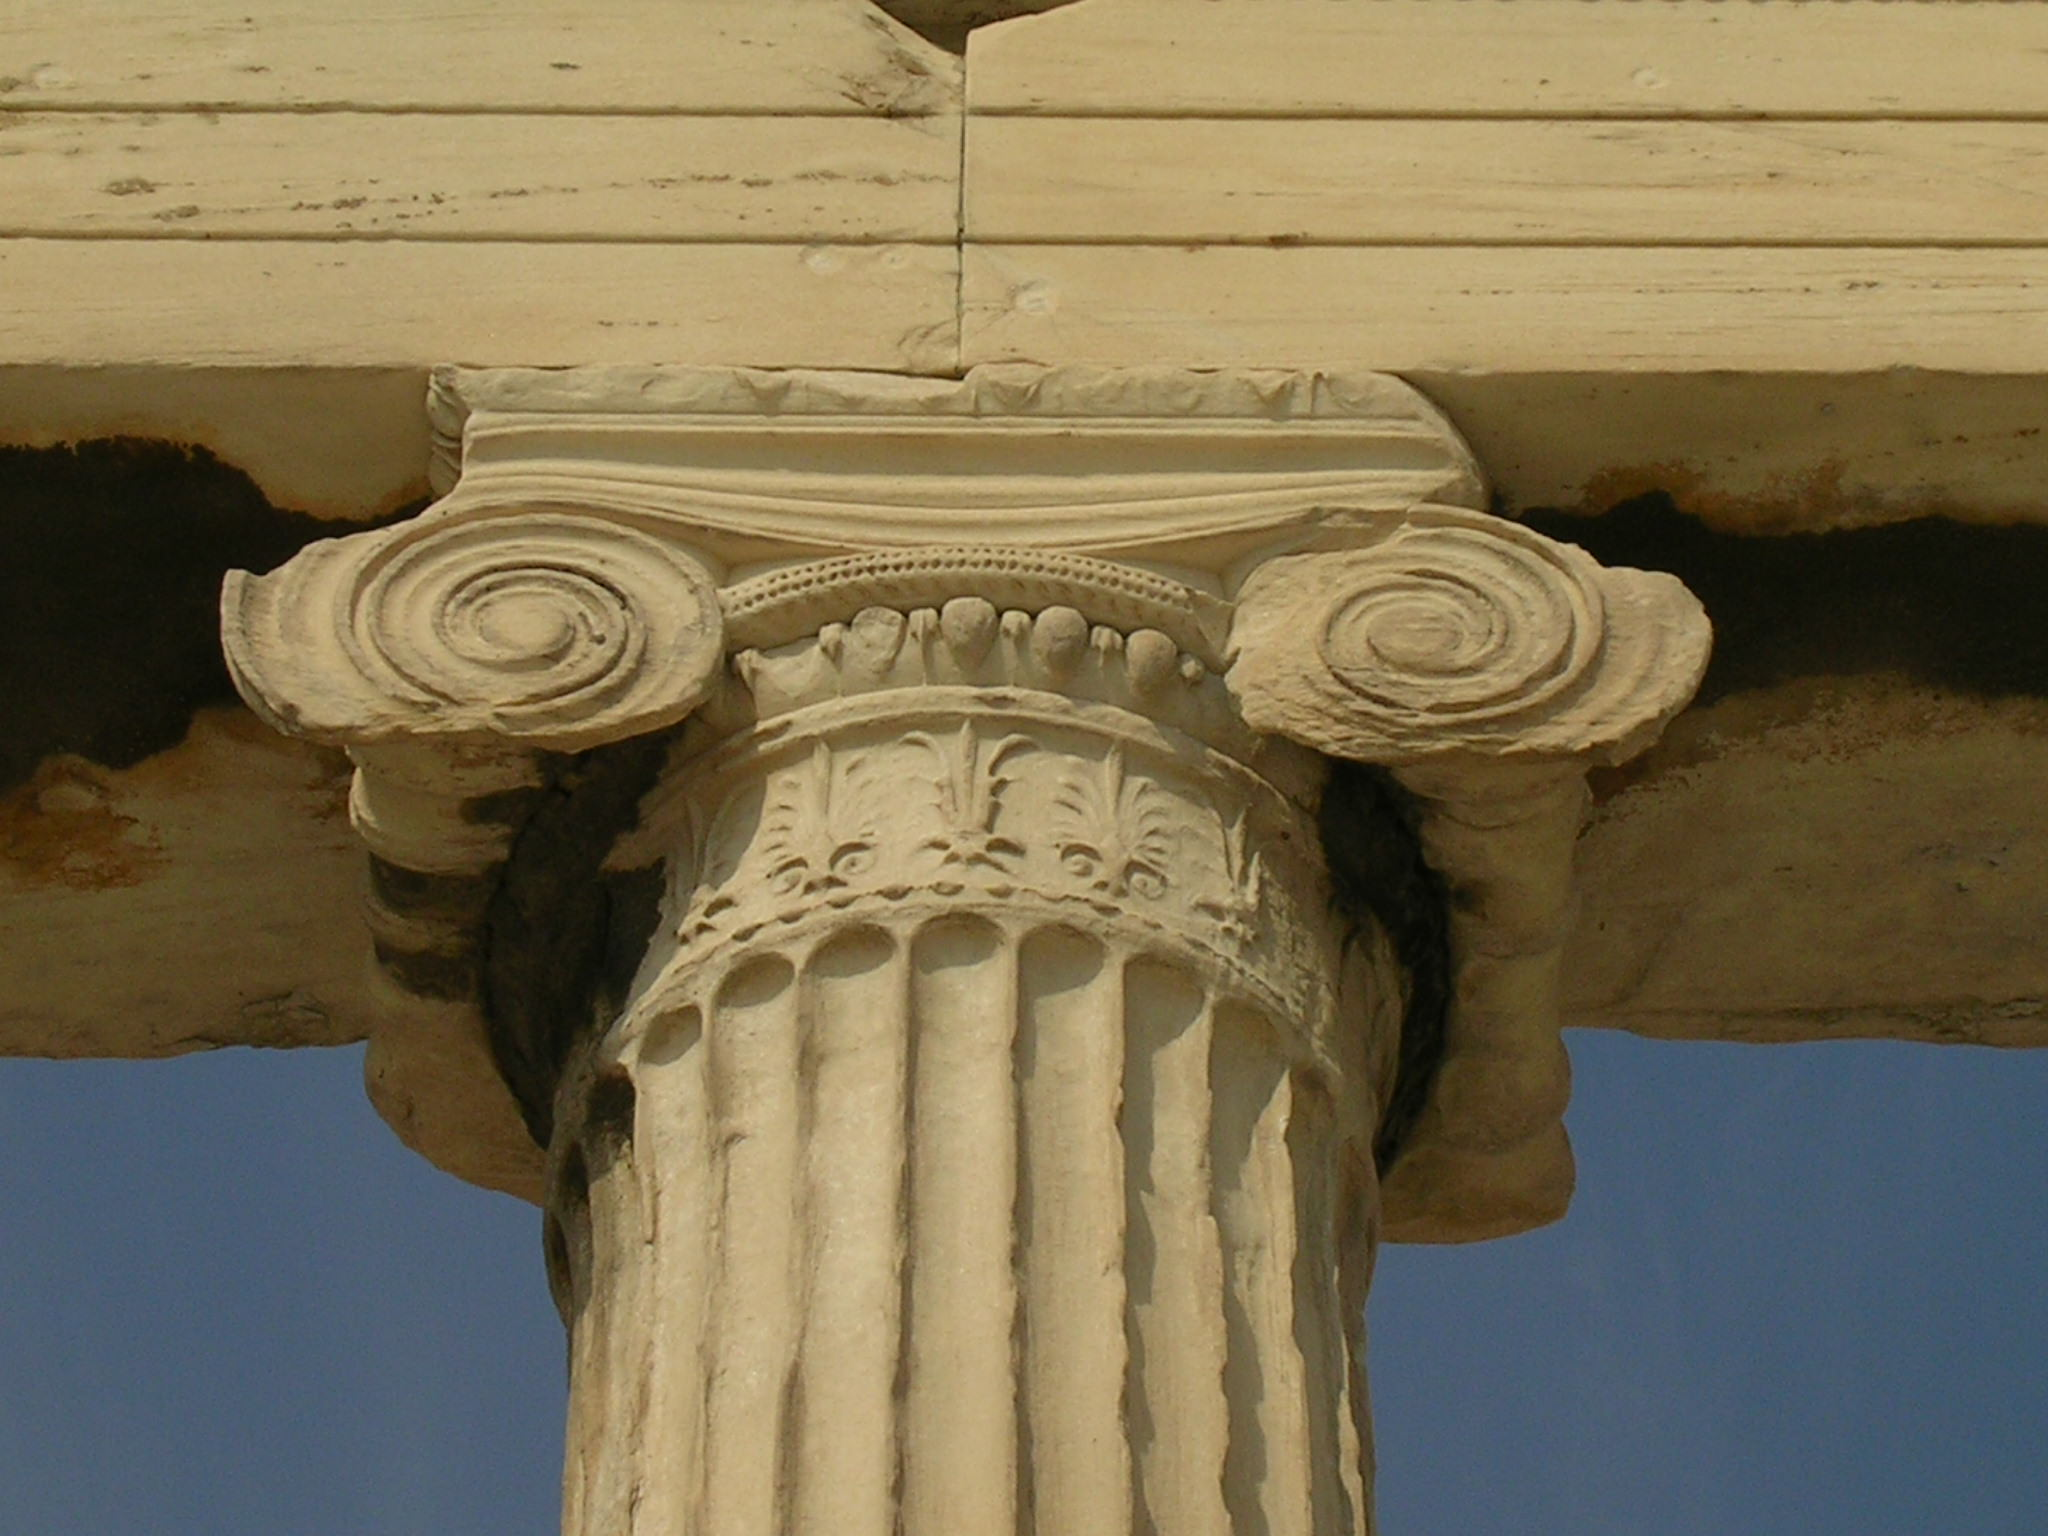 Modern Architecture Vs Ancient Greek Architecture greek architecture - ancient history encyclopedia